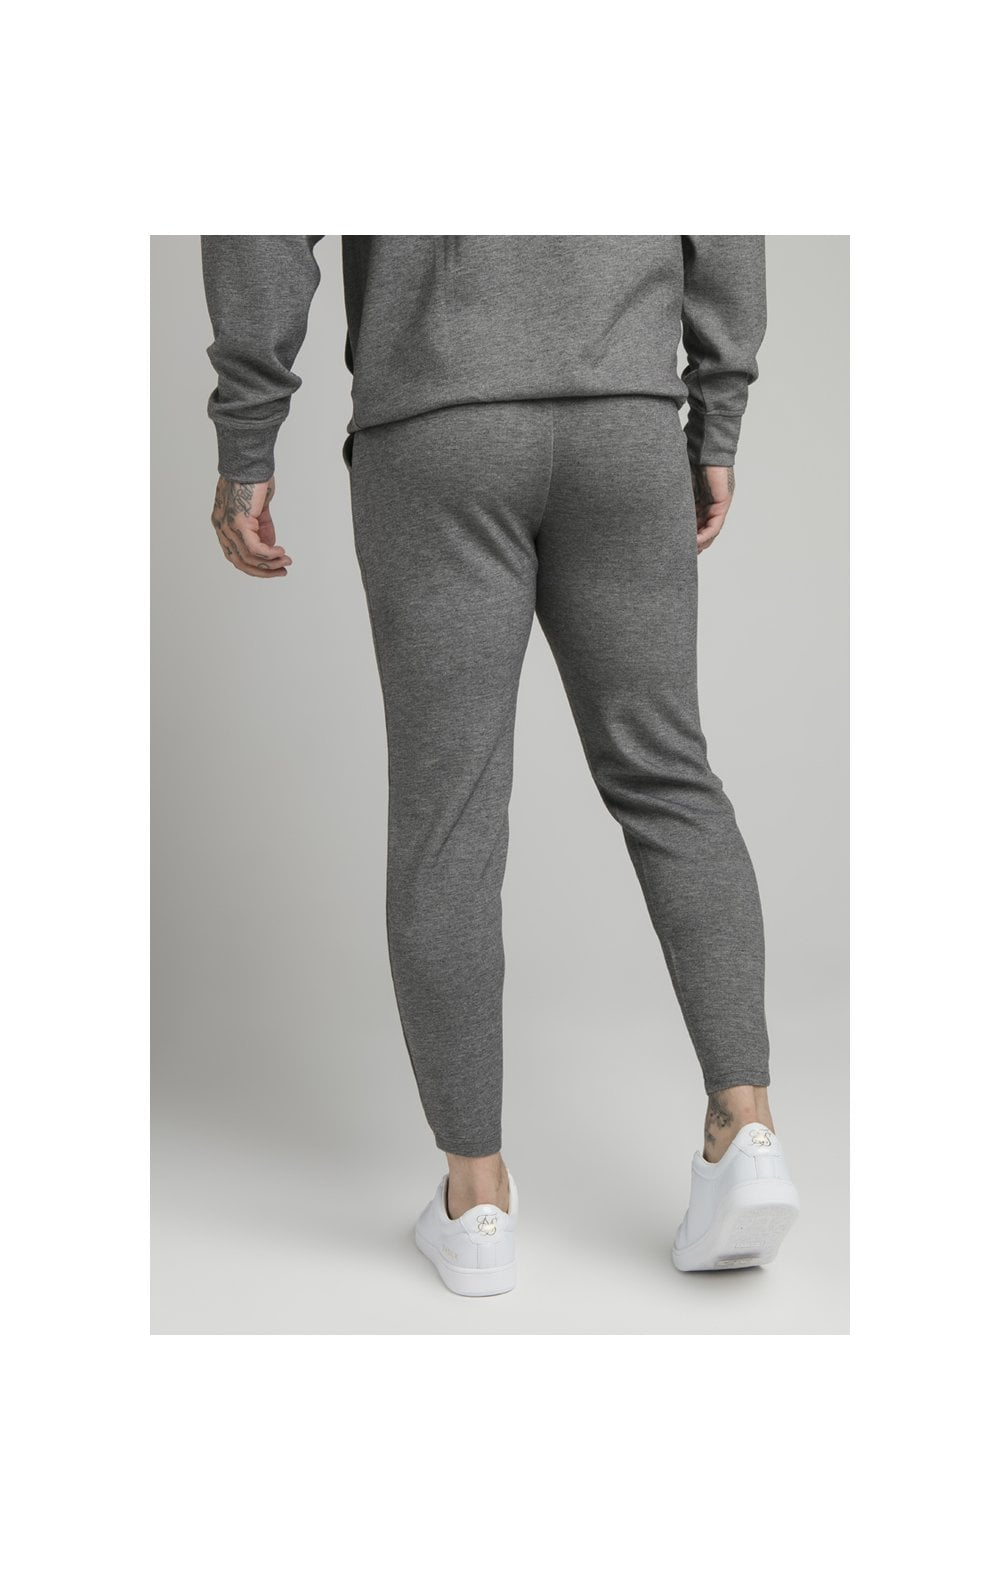 Load image into Gallery viewer, SikSilk Dual Logo Pant - Grey (3)